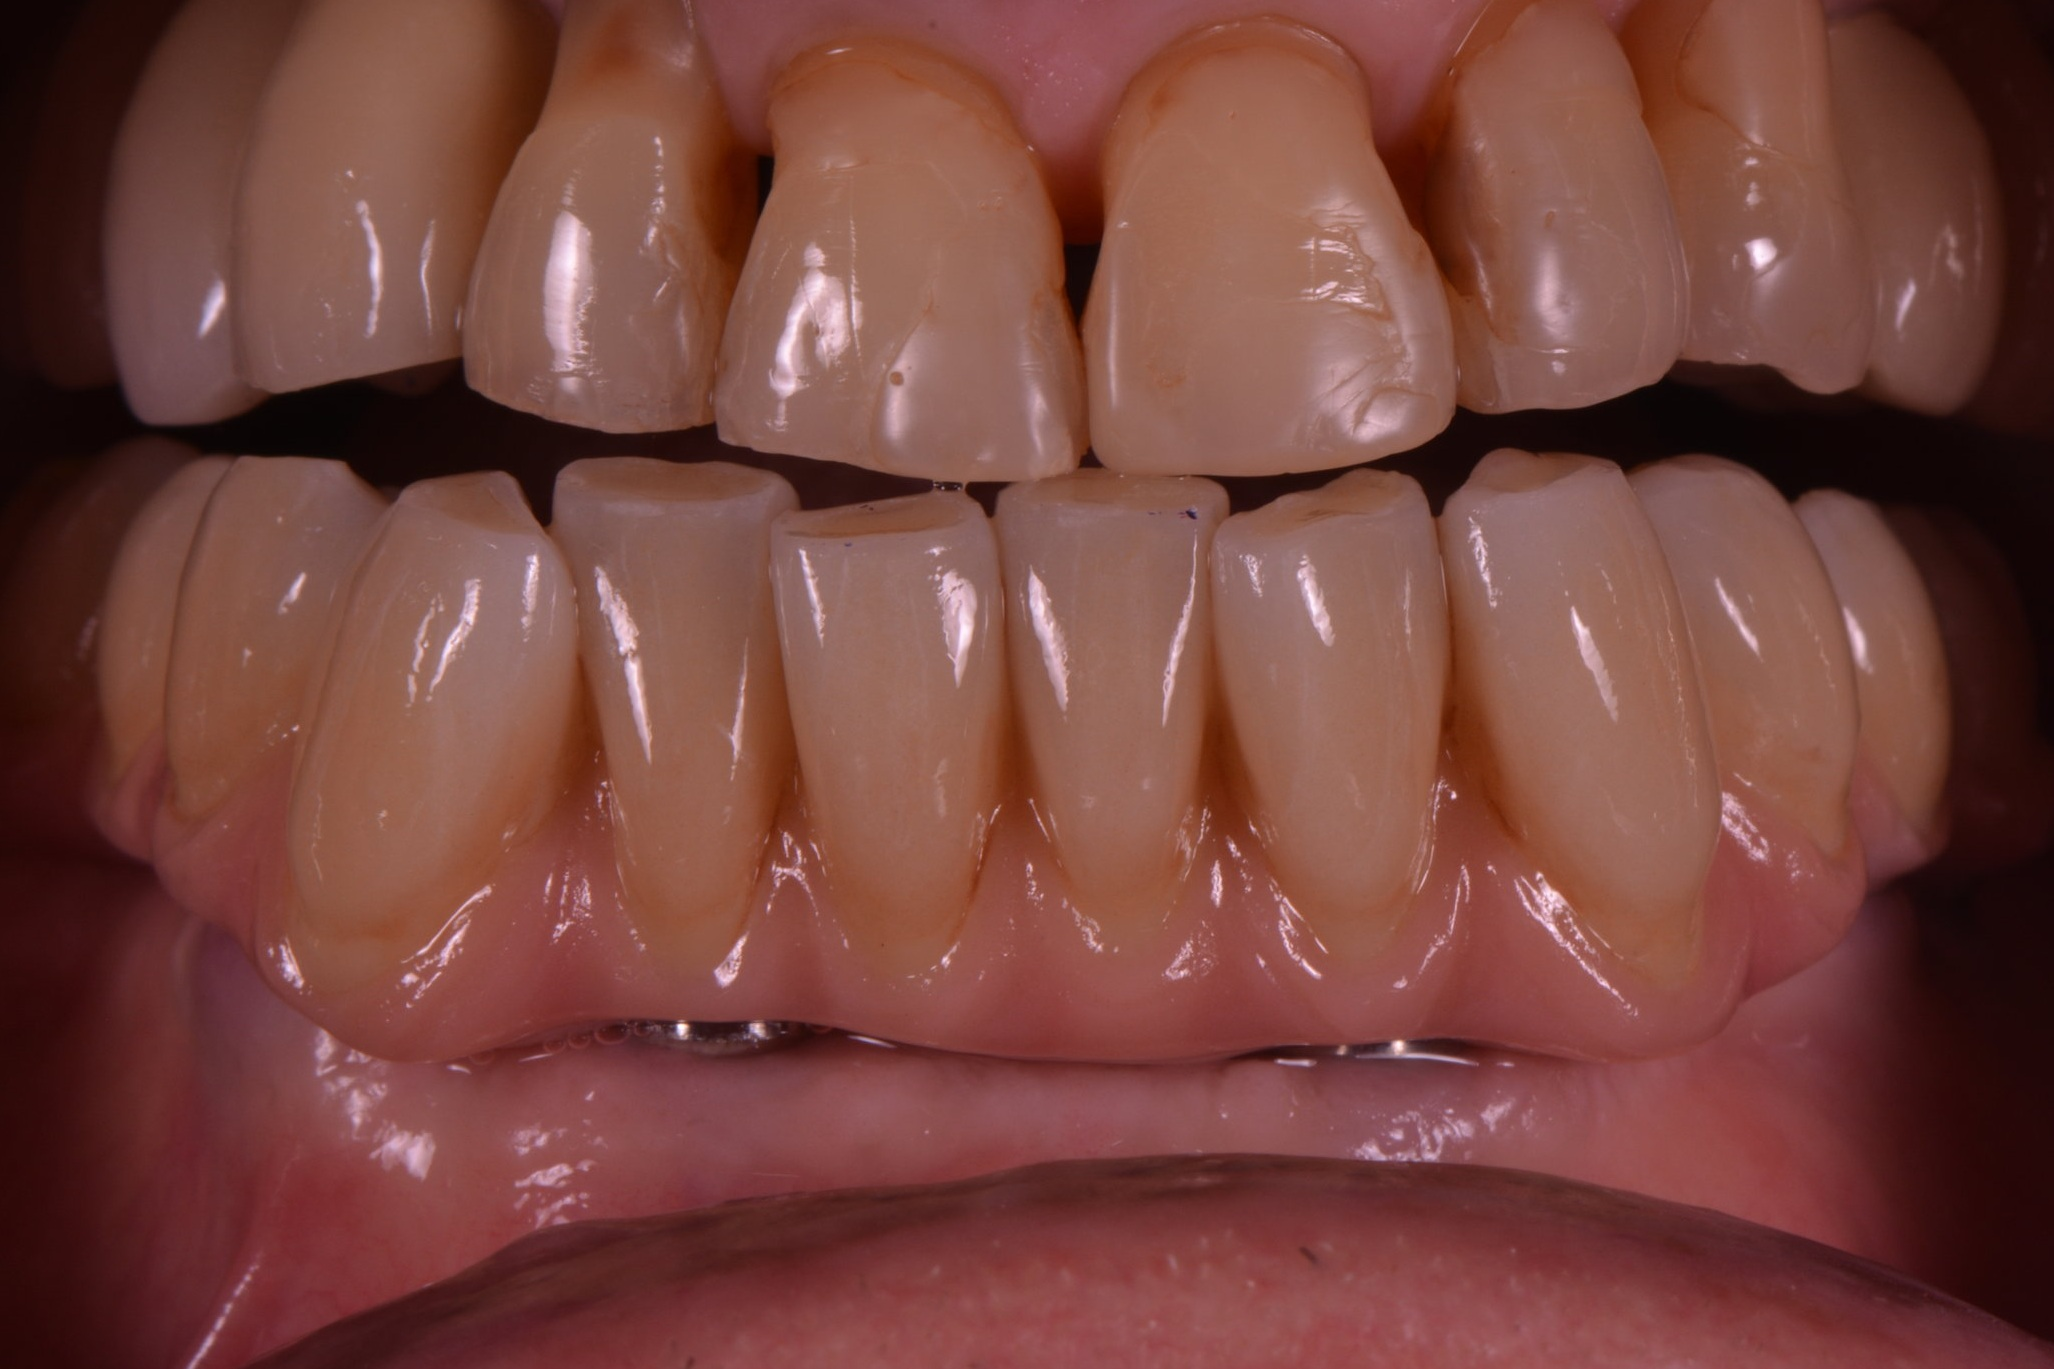 Advantages - Esthetics, is questionable depending on prosthesis thickness as well as laboratory technician unique talentGreat color stability: due to porcelain and glaze nature it does not stain or fade a way over timeGreat oral hygiene:No wear or fractureDigital technique: easy to reproduce if needed